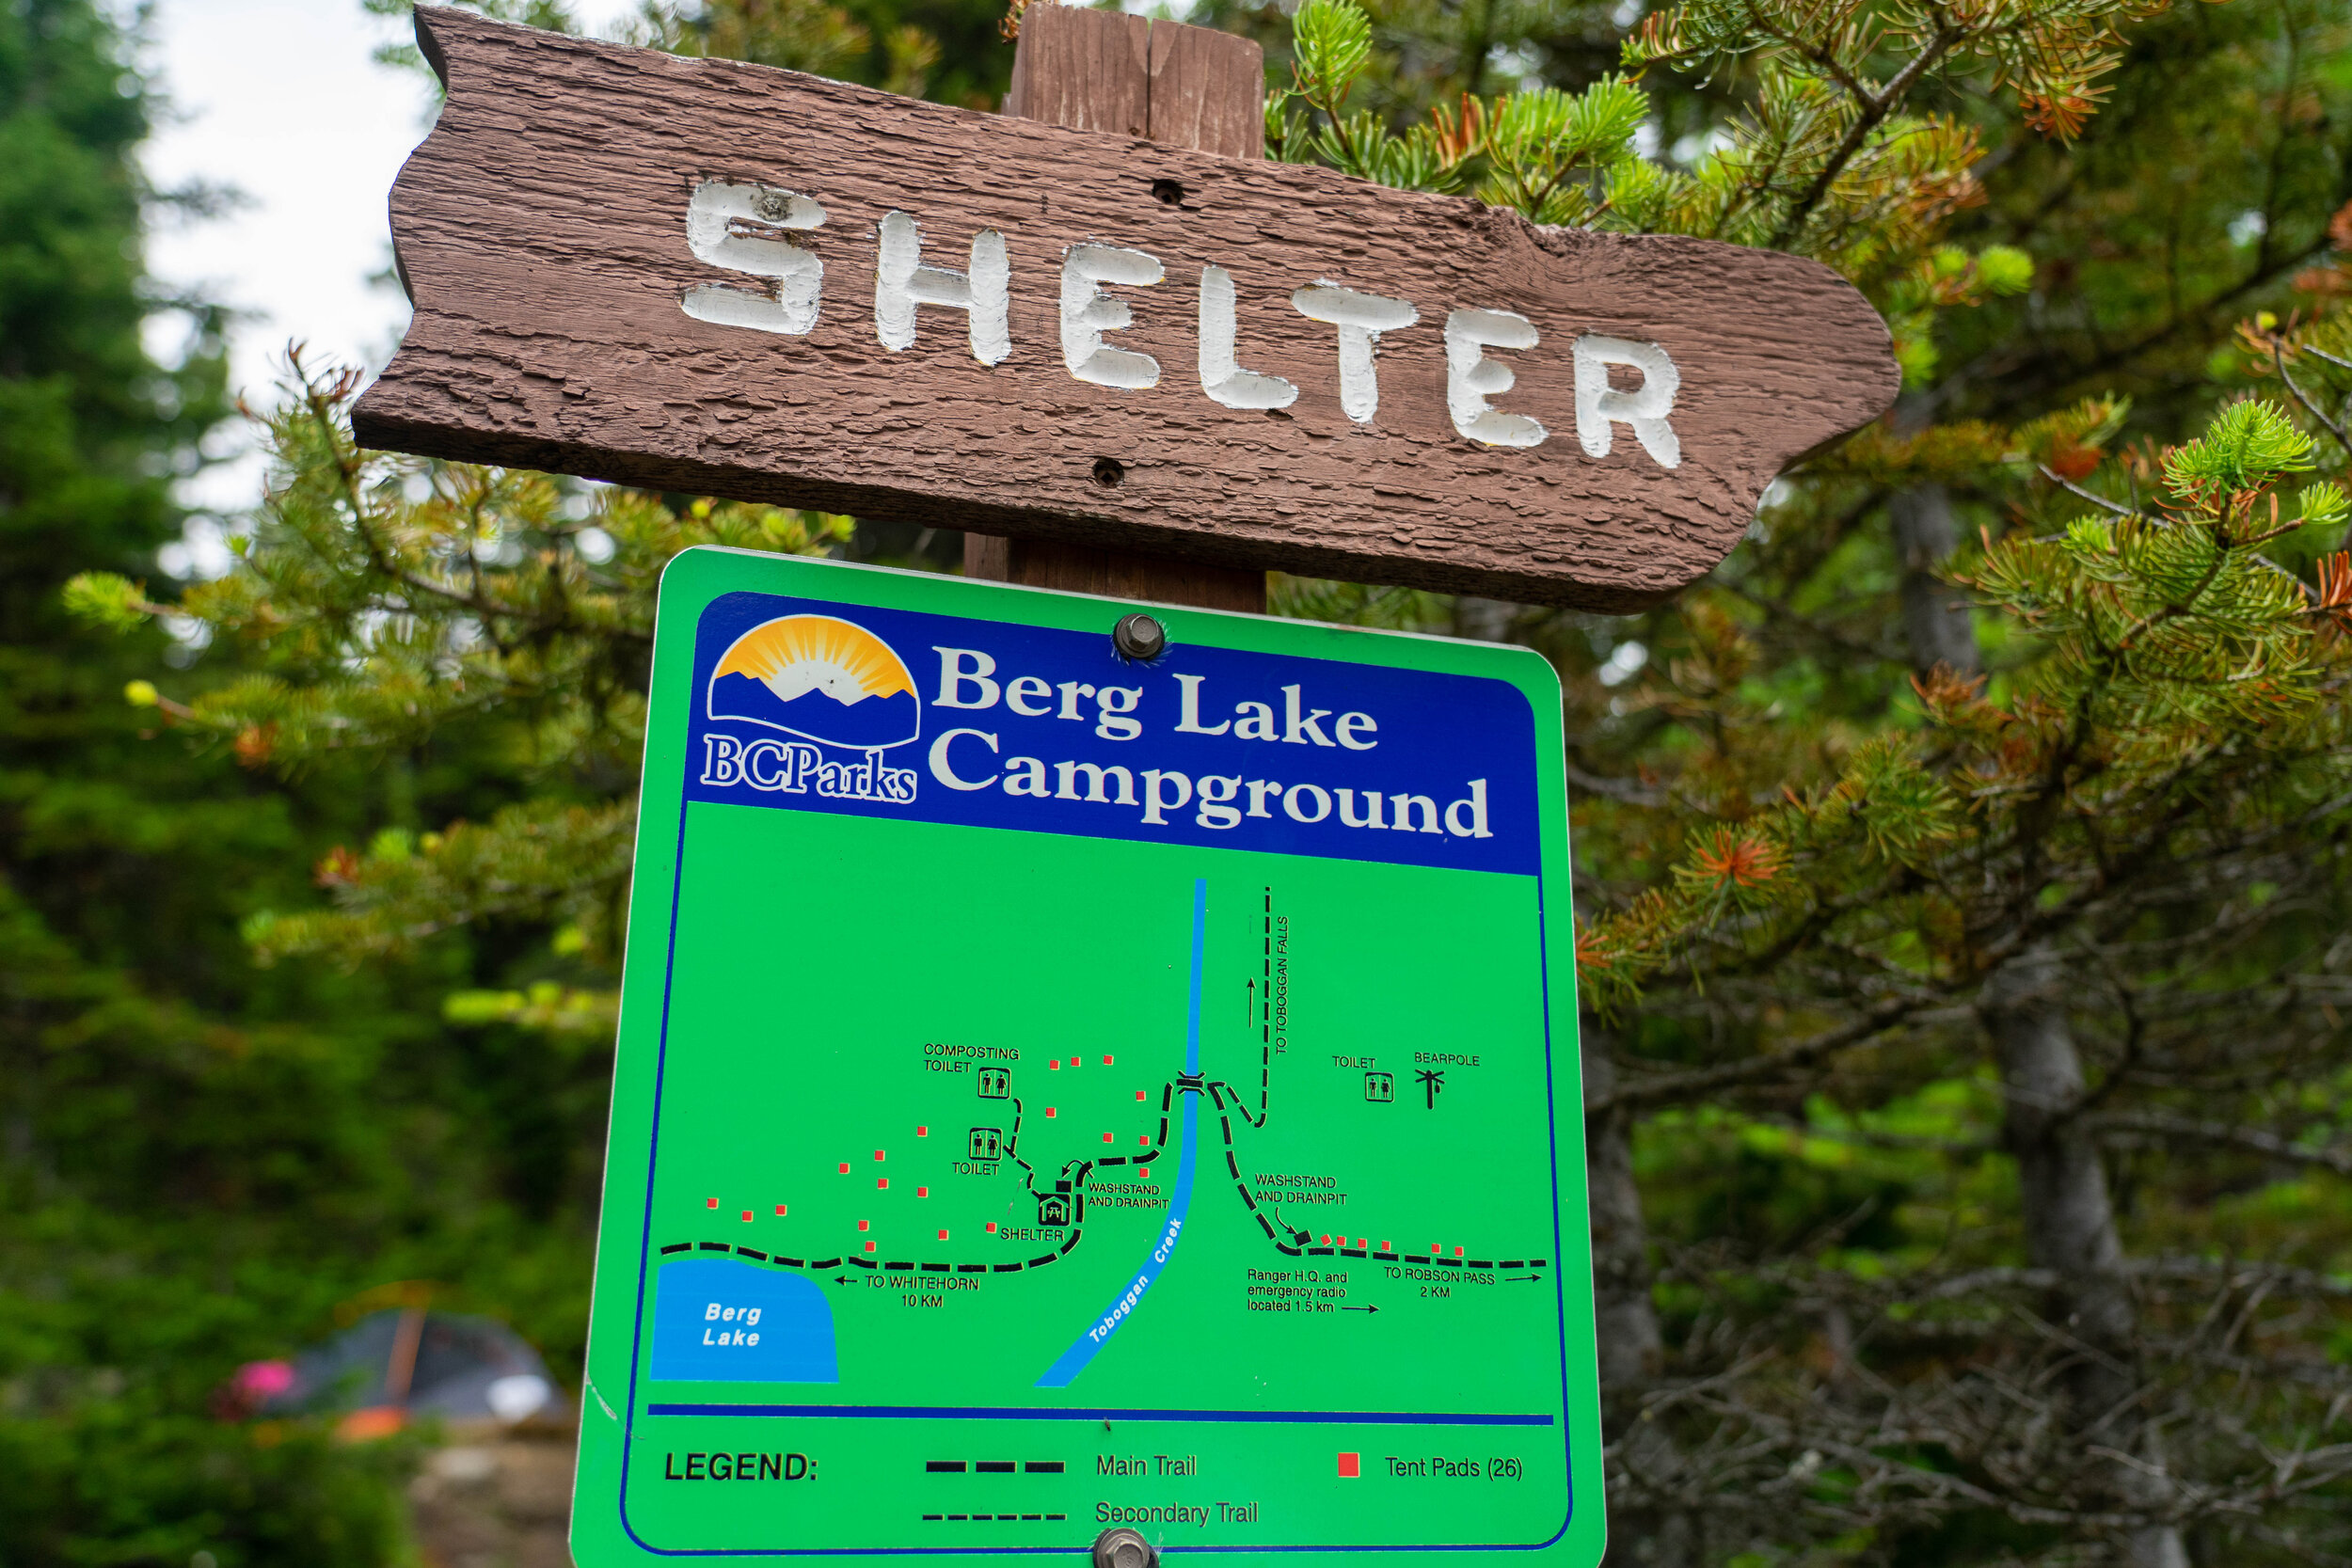 All of the campgrounds have signs with maps.